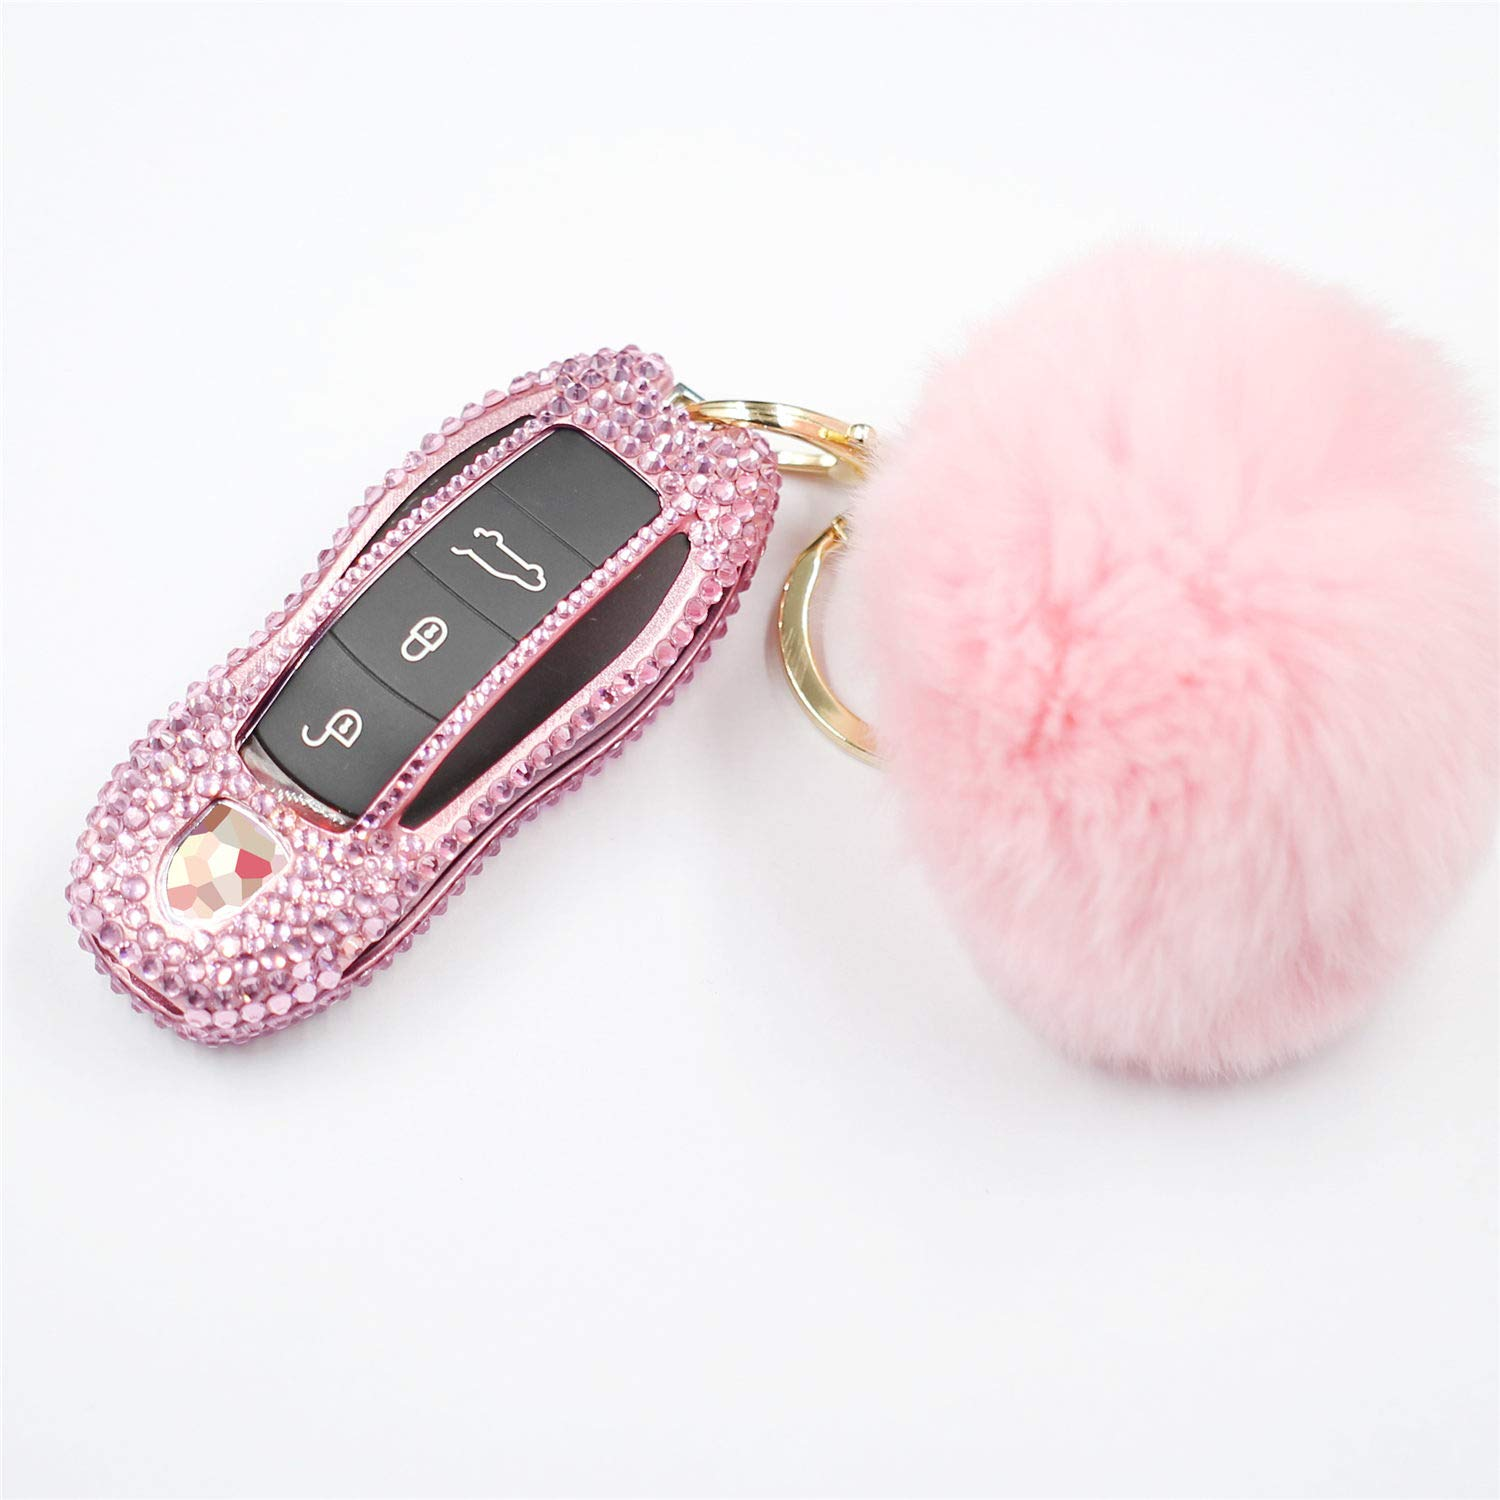 M.JVisun Handmade Car Key Fob Cover for Porsche Remote Fob, Diamond Key Case Cover Fits Porsche 718 911 918 Panamera Macan Cayenne Boxster Cayman, Bling Crystals Aluminum Key Cover Protector - Pink